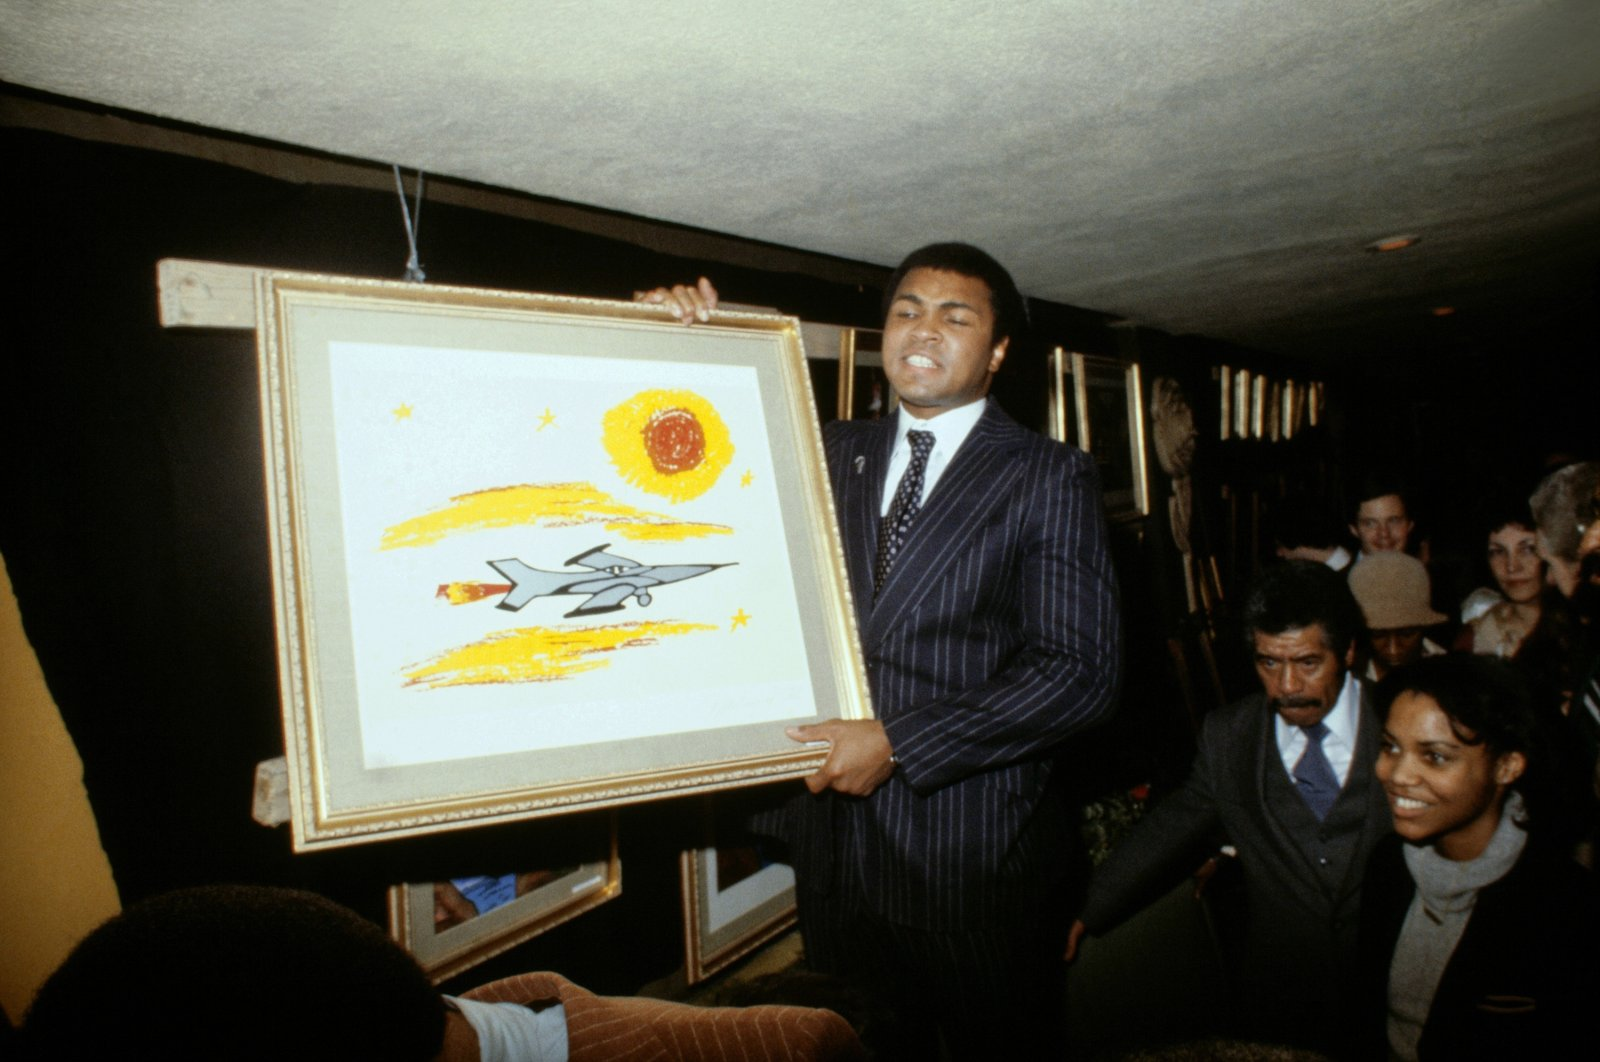 Muhammad Ali poses with a painting in 1960. (Getty Images)